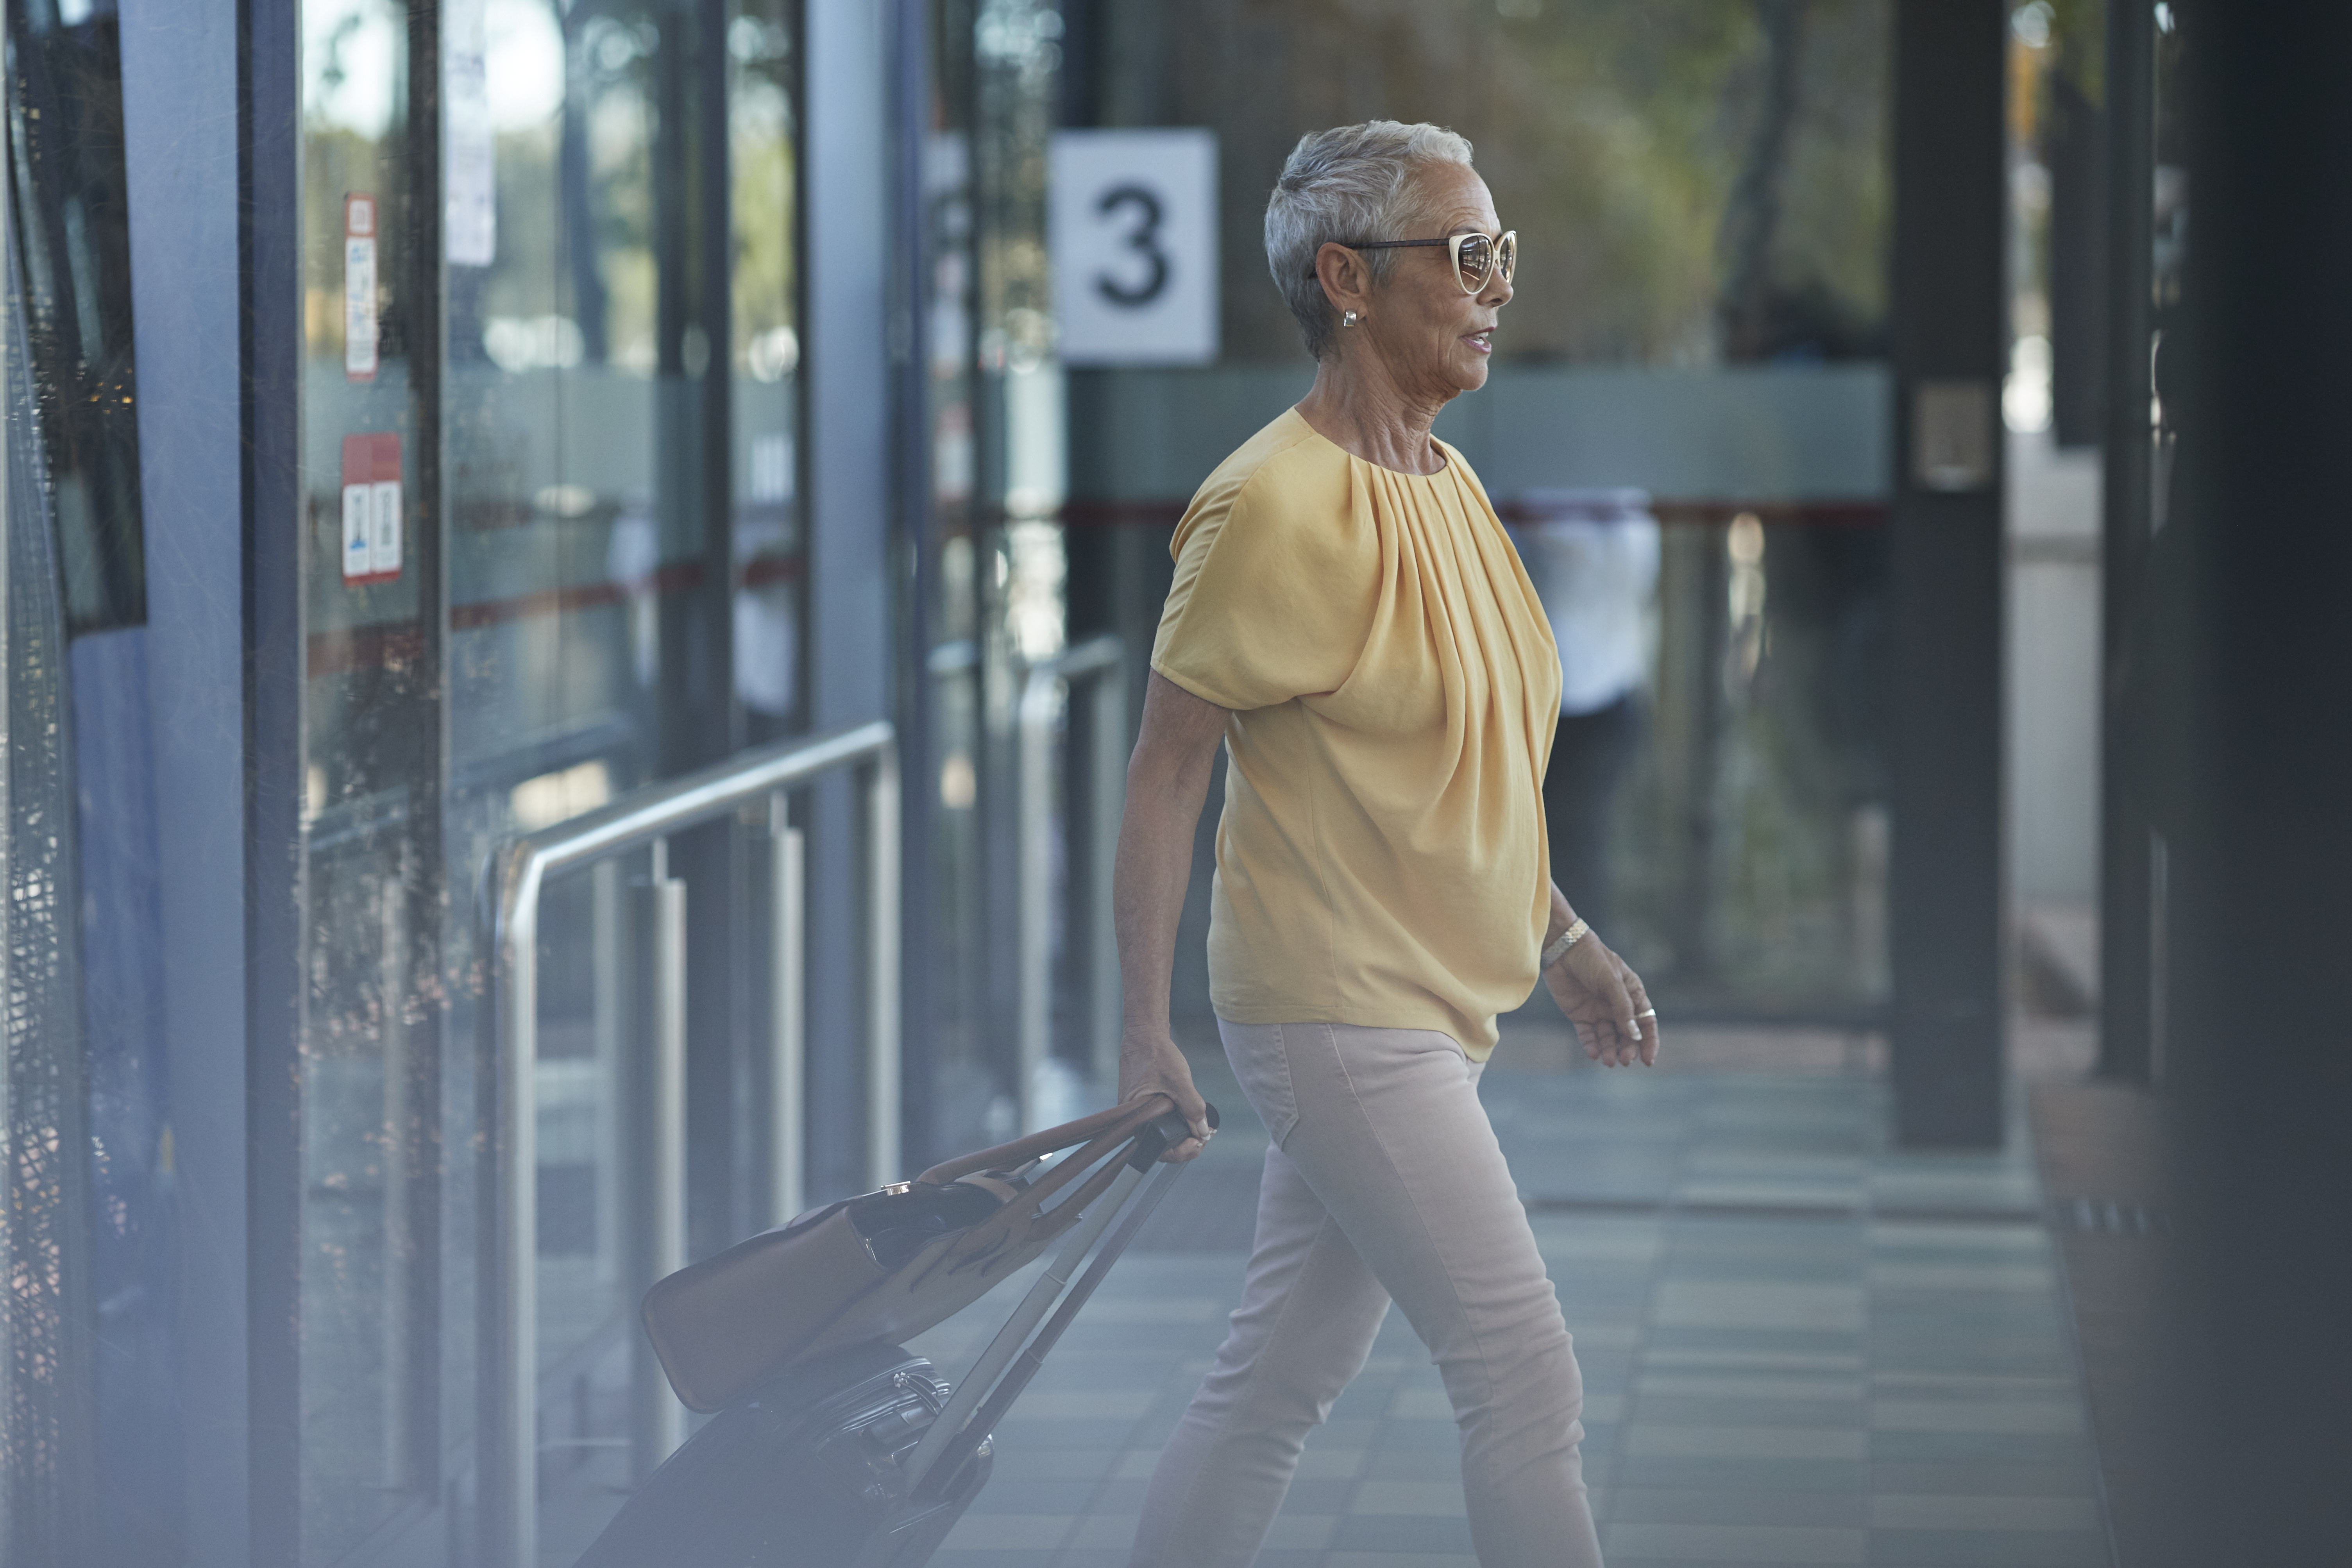 Senior woman walking out of bus, on to public transport platform